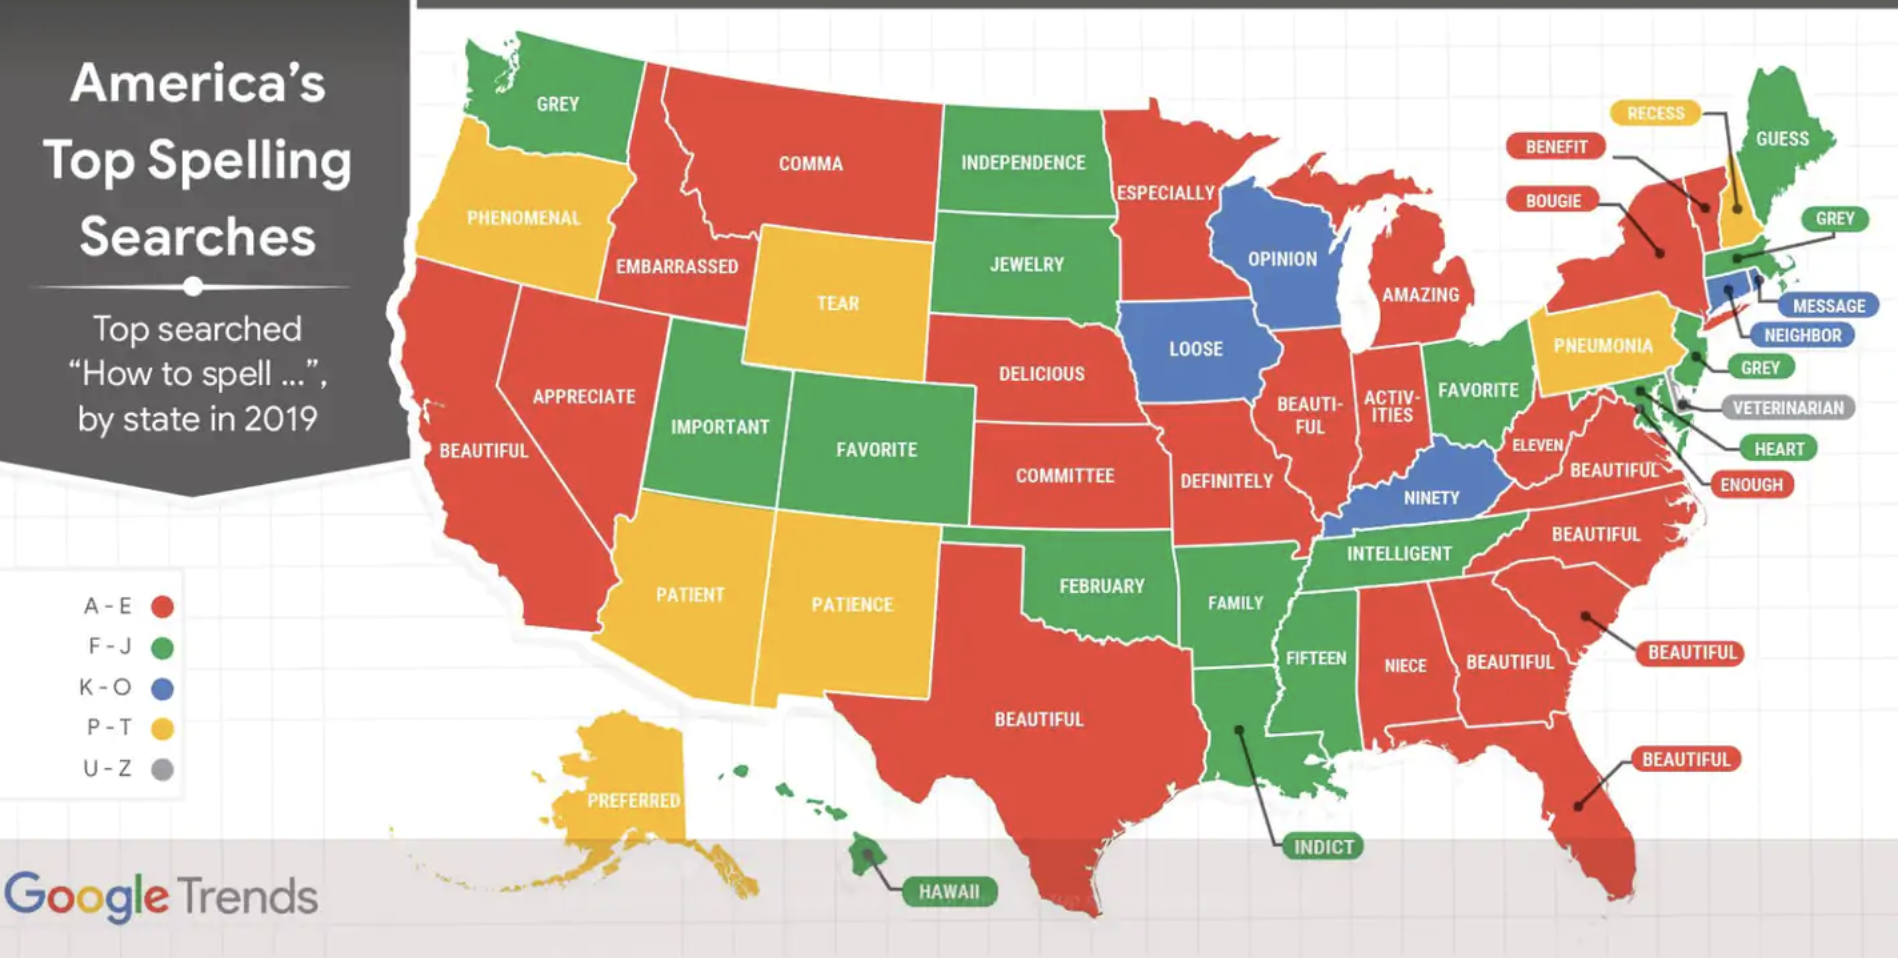 """Beautiful"", ""embarrassed"", ""patience""... America's top spelling searches by state, according to Google"